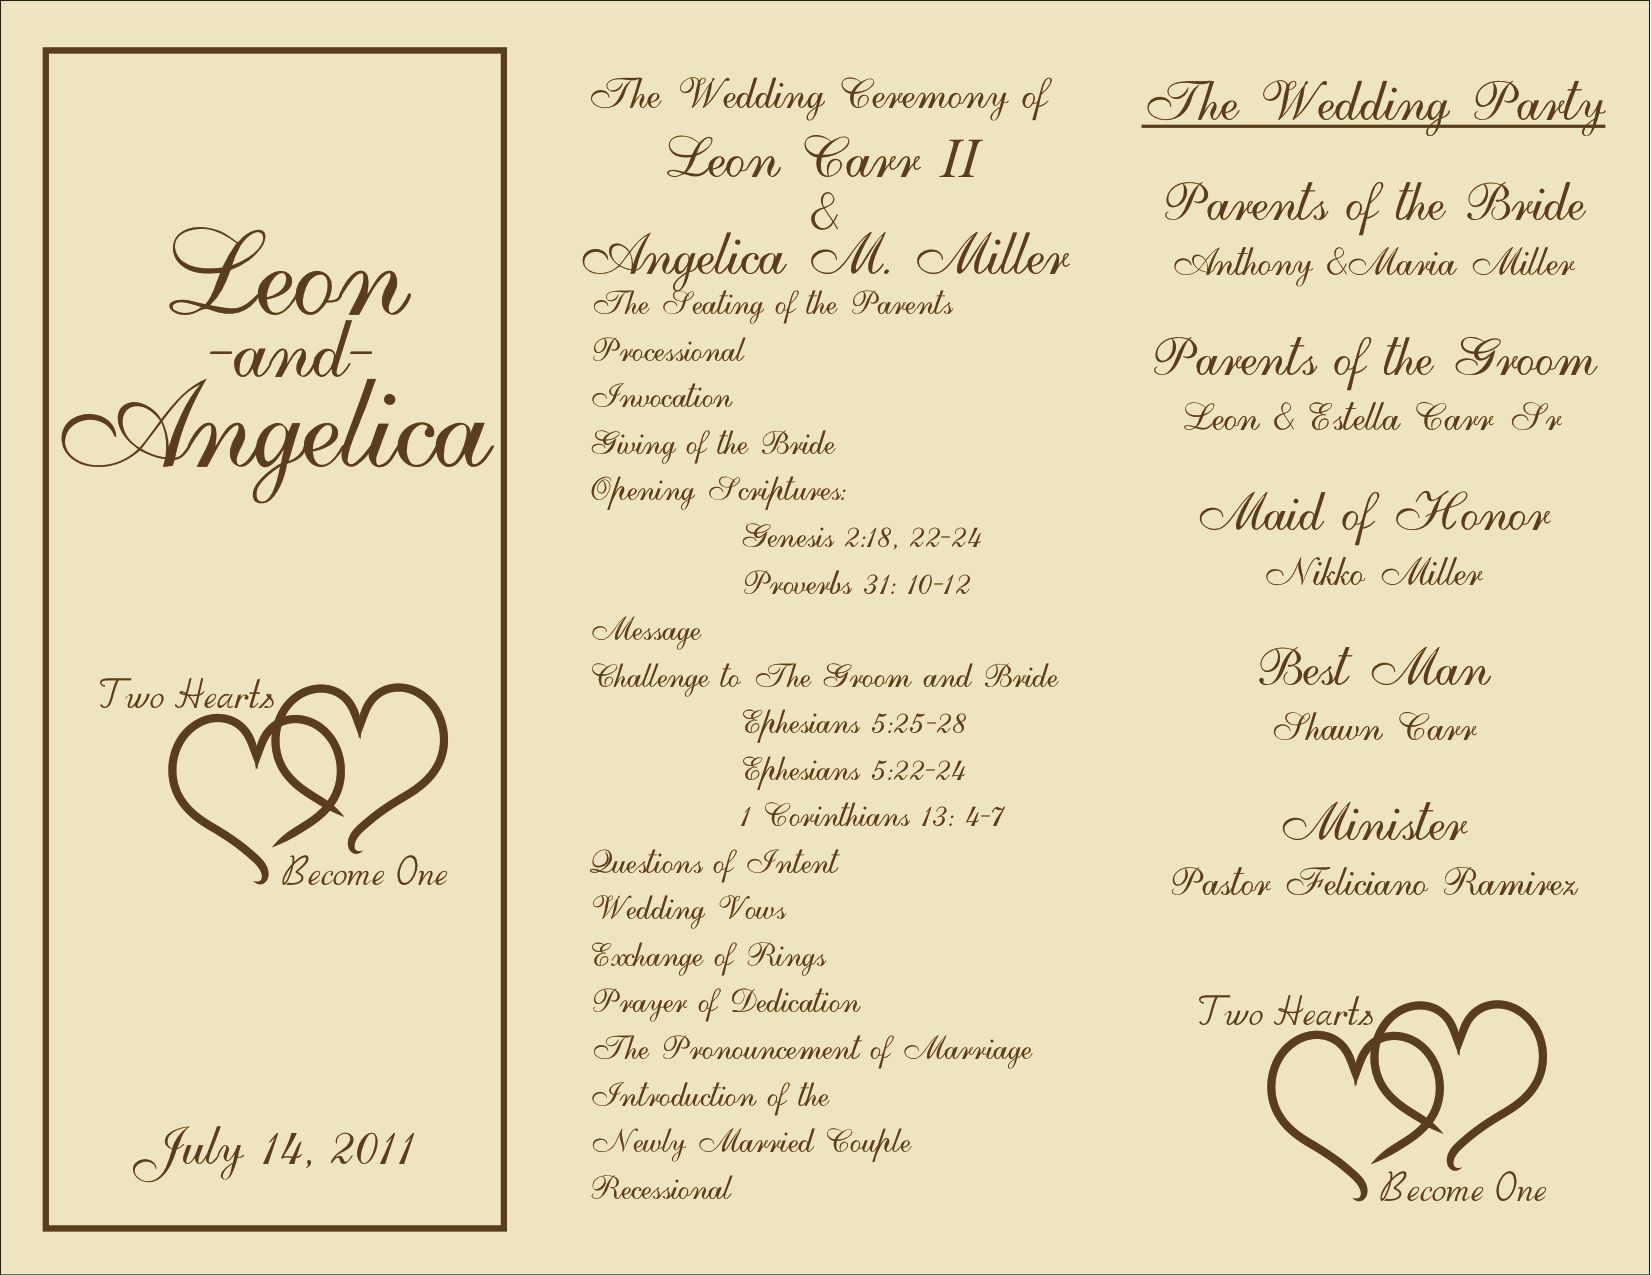 Free Printable Wedding Programs Templates Sample Wedding - Free sample wedding programs templates